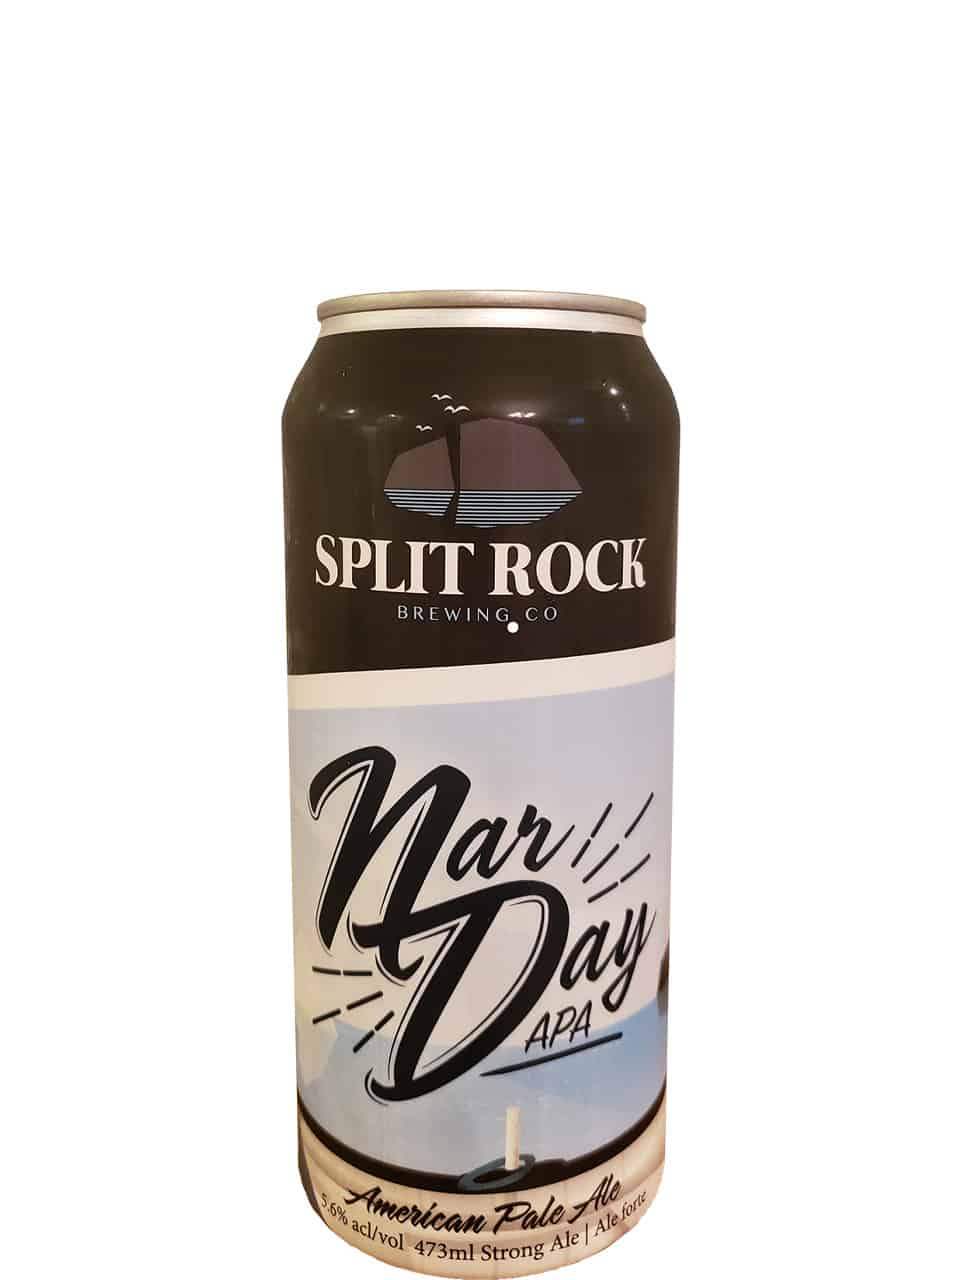 Split Rock Nar Day APA 473ml Can